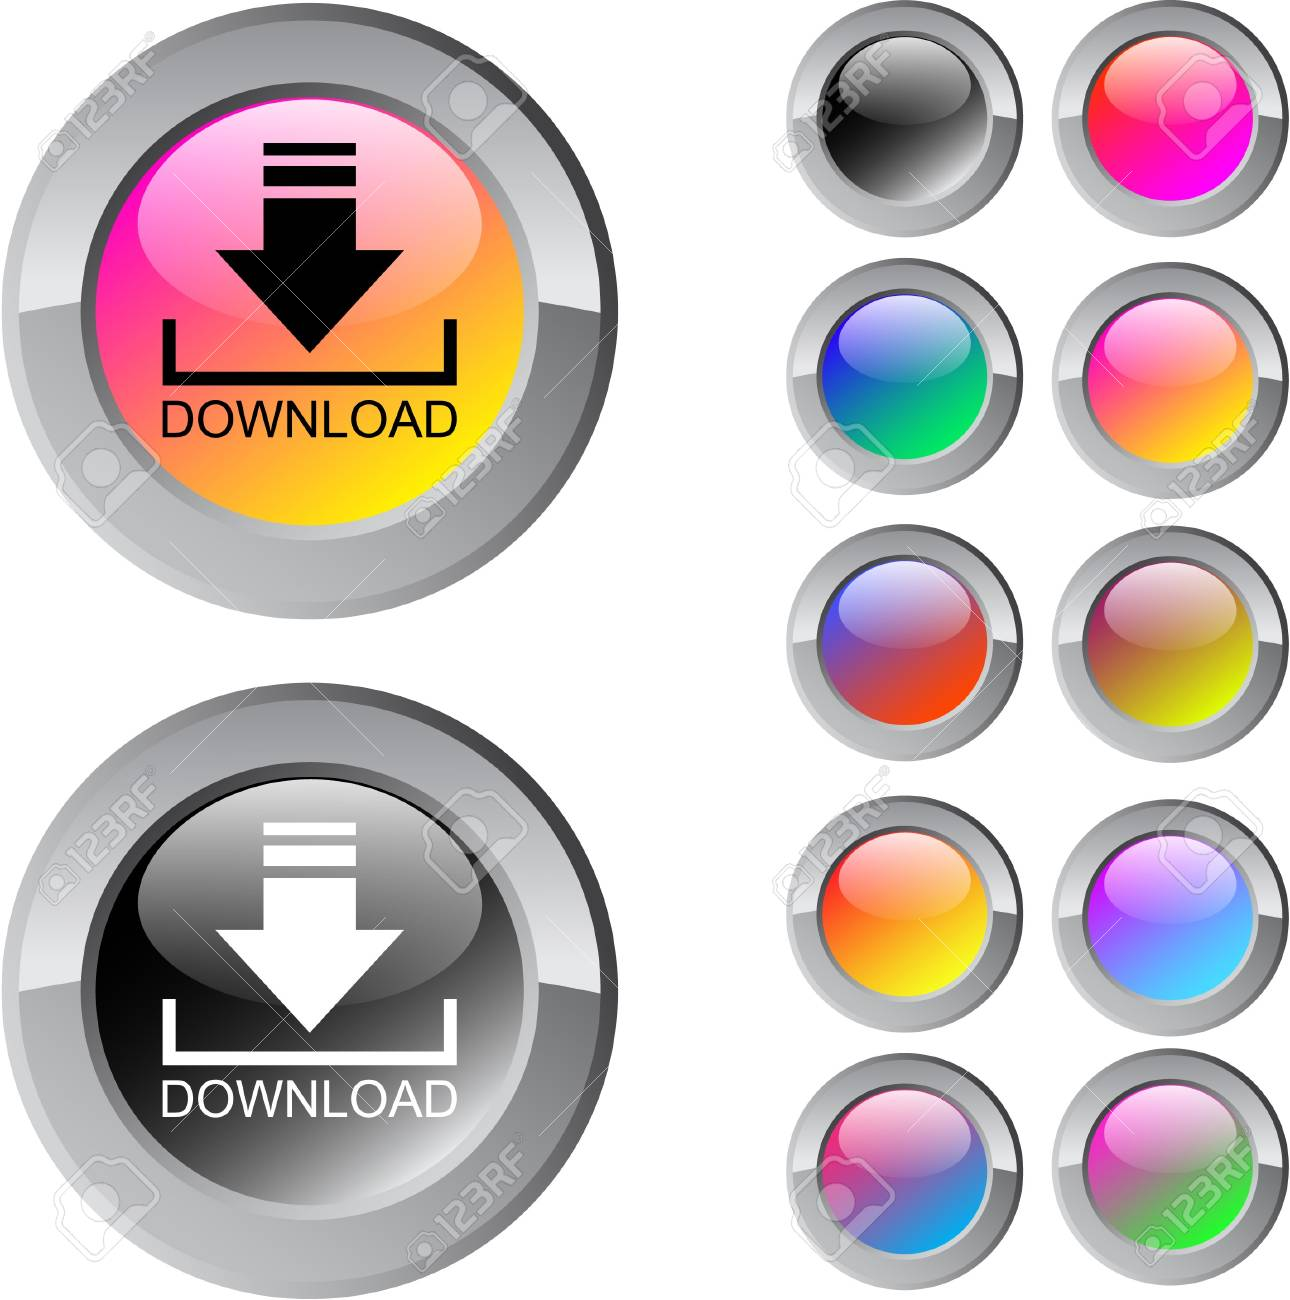 Download multicolor glossy round web buttons. Stock Vector - 7282266